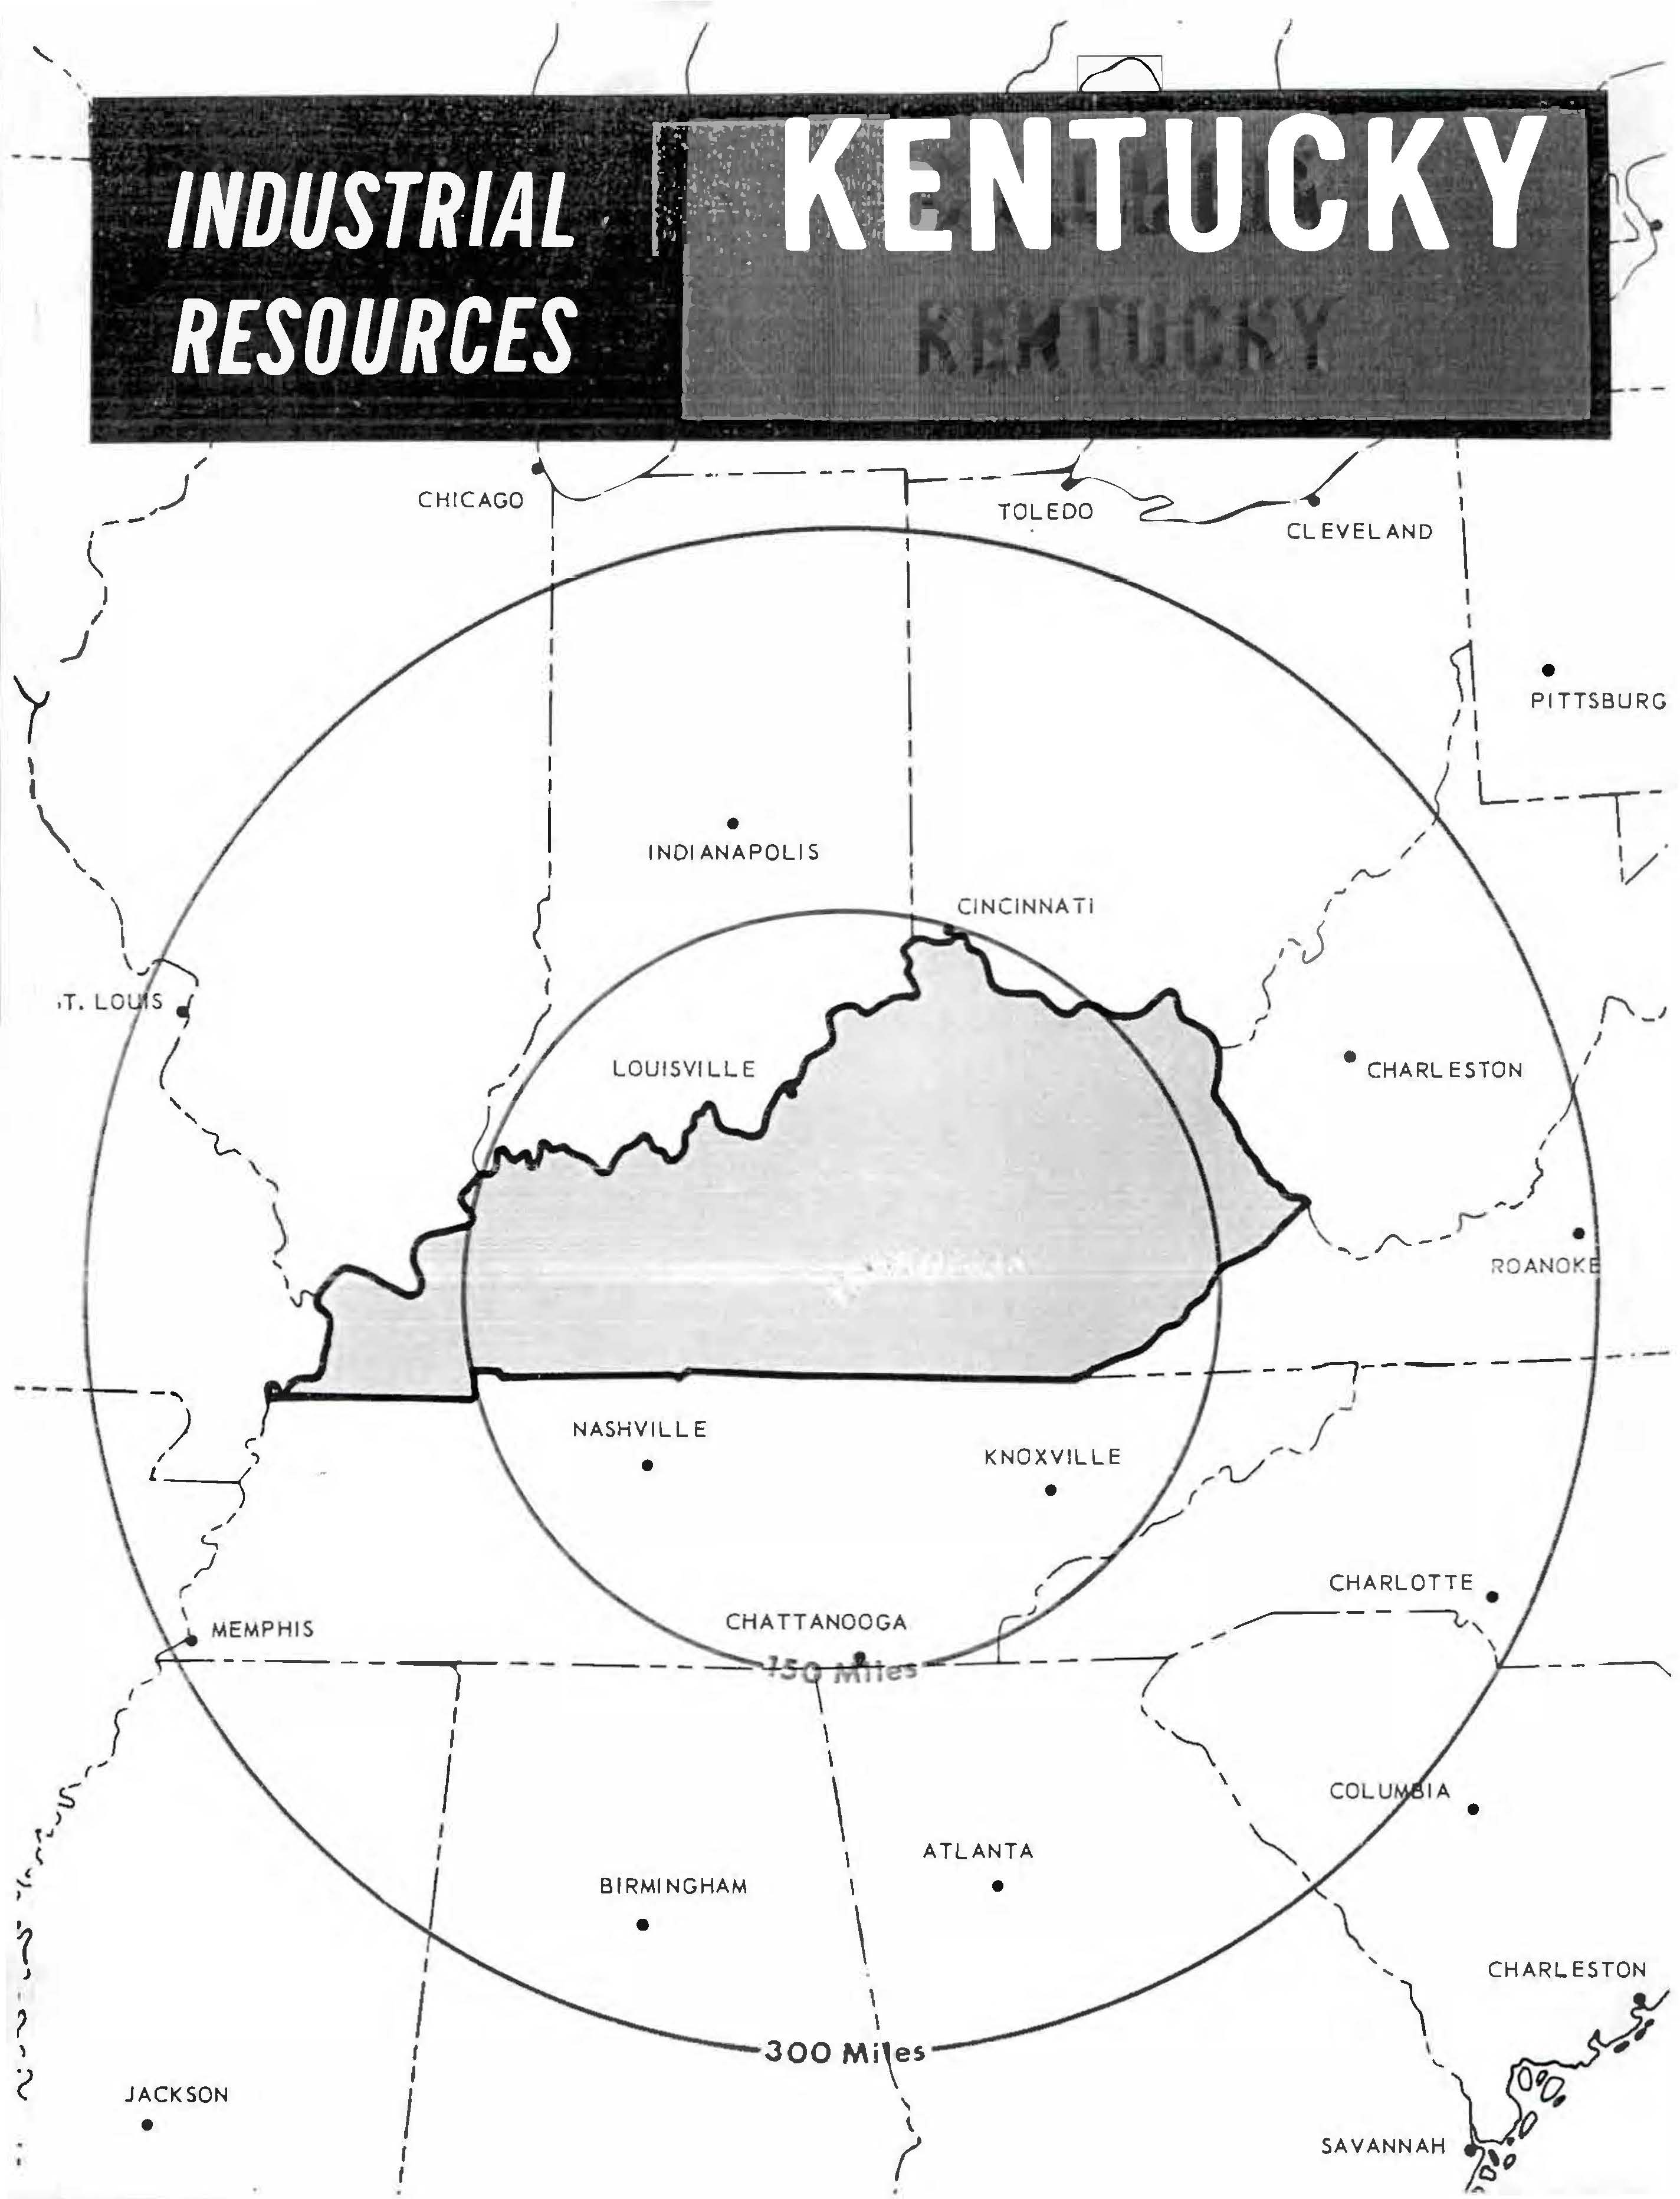 Industrial Reports for Kentucky Counties